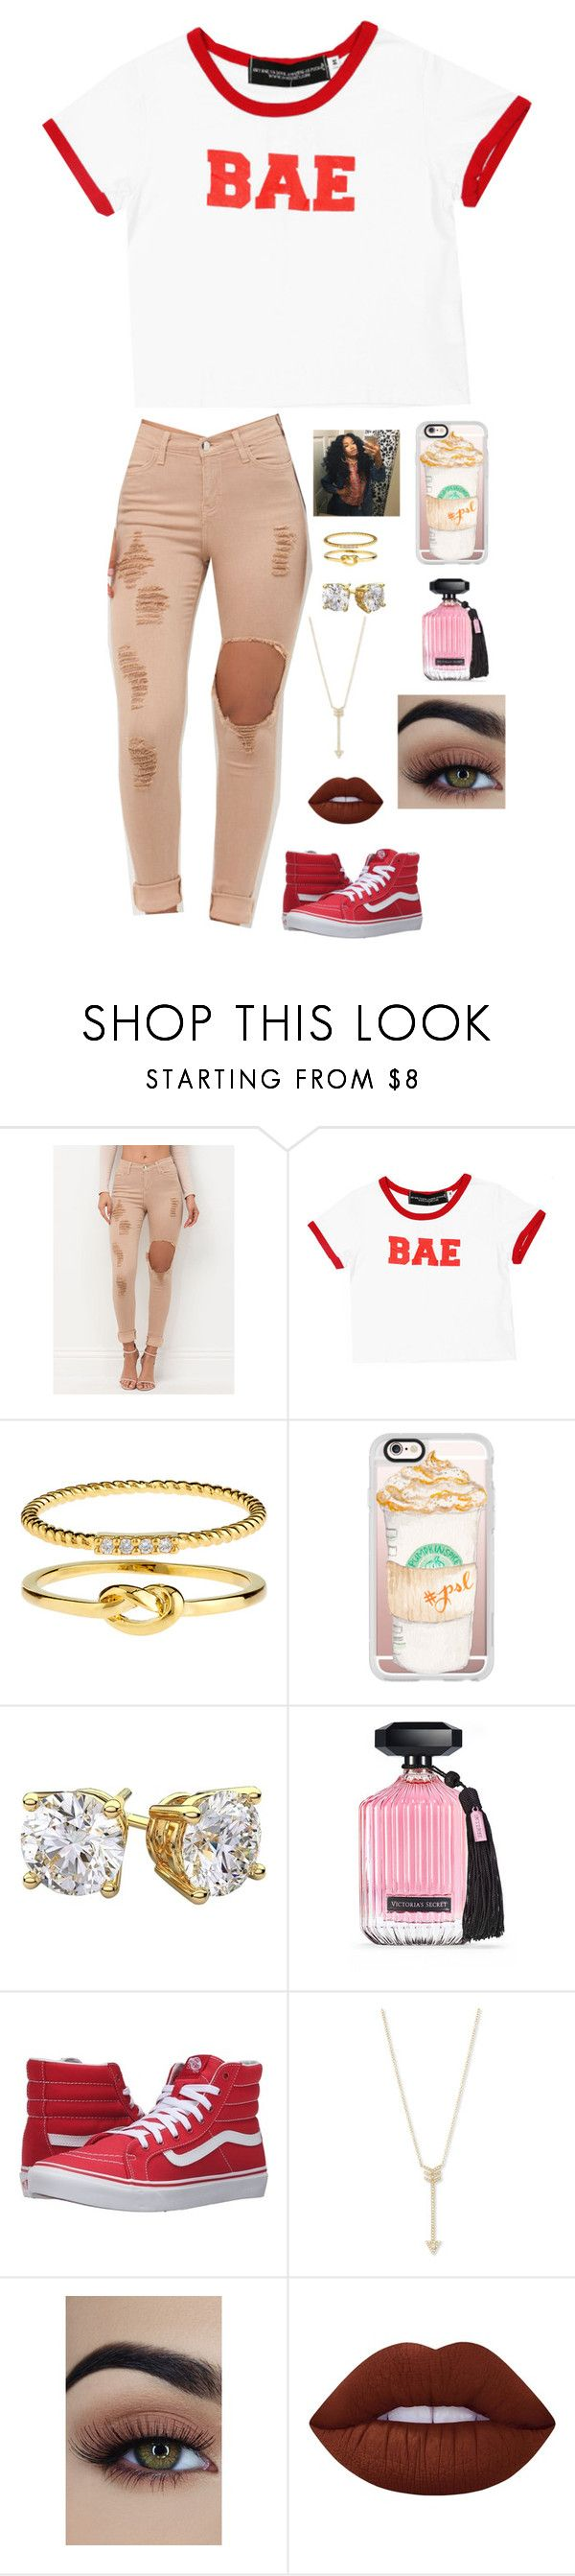 """""""Put a X up on da system"""" by swaggyrl ❤ liked on Polyvore featuring Accessorize, Casetify, Victoria's Secret, Vans, EF Collection and Lime Crime"""